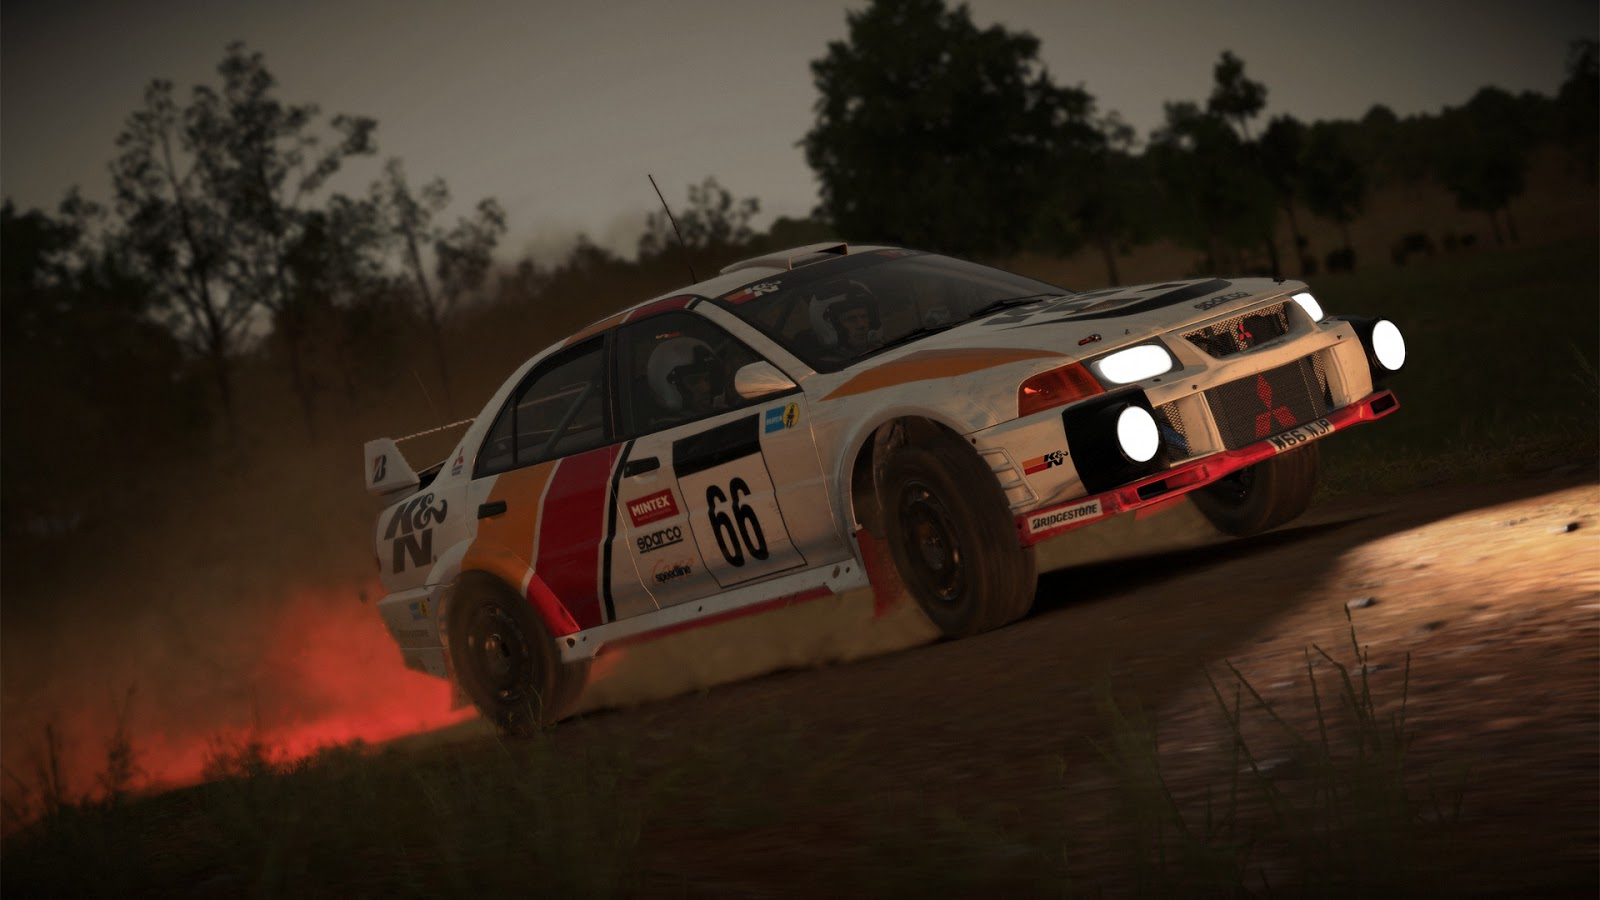 dirt 4 announcement trailer and images the entertainment factor. Black Bedroom Furniture Sets. Home Design Ideas